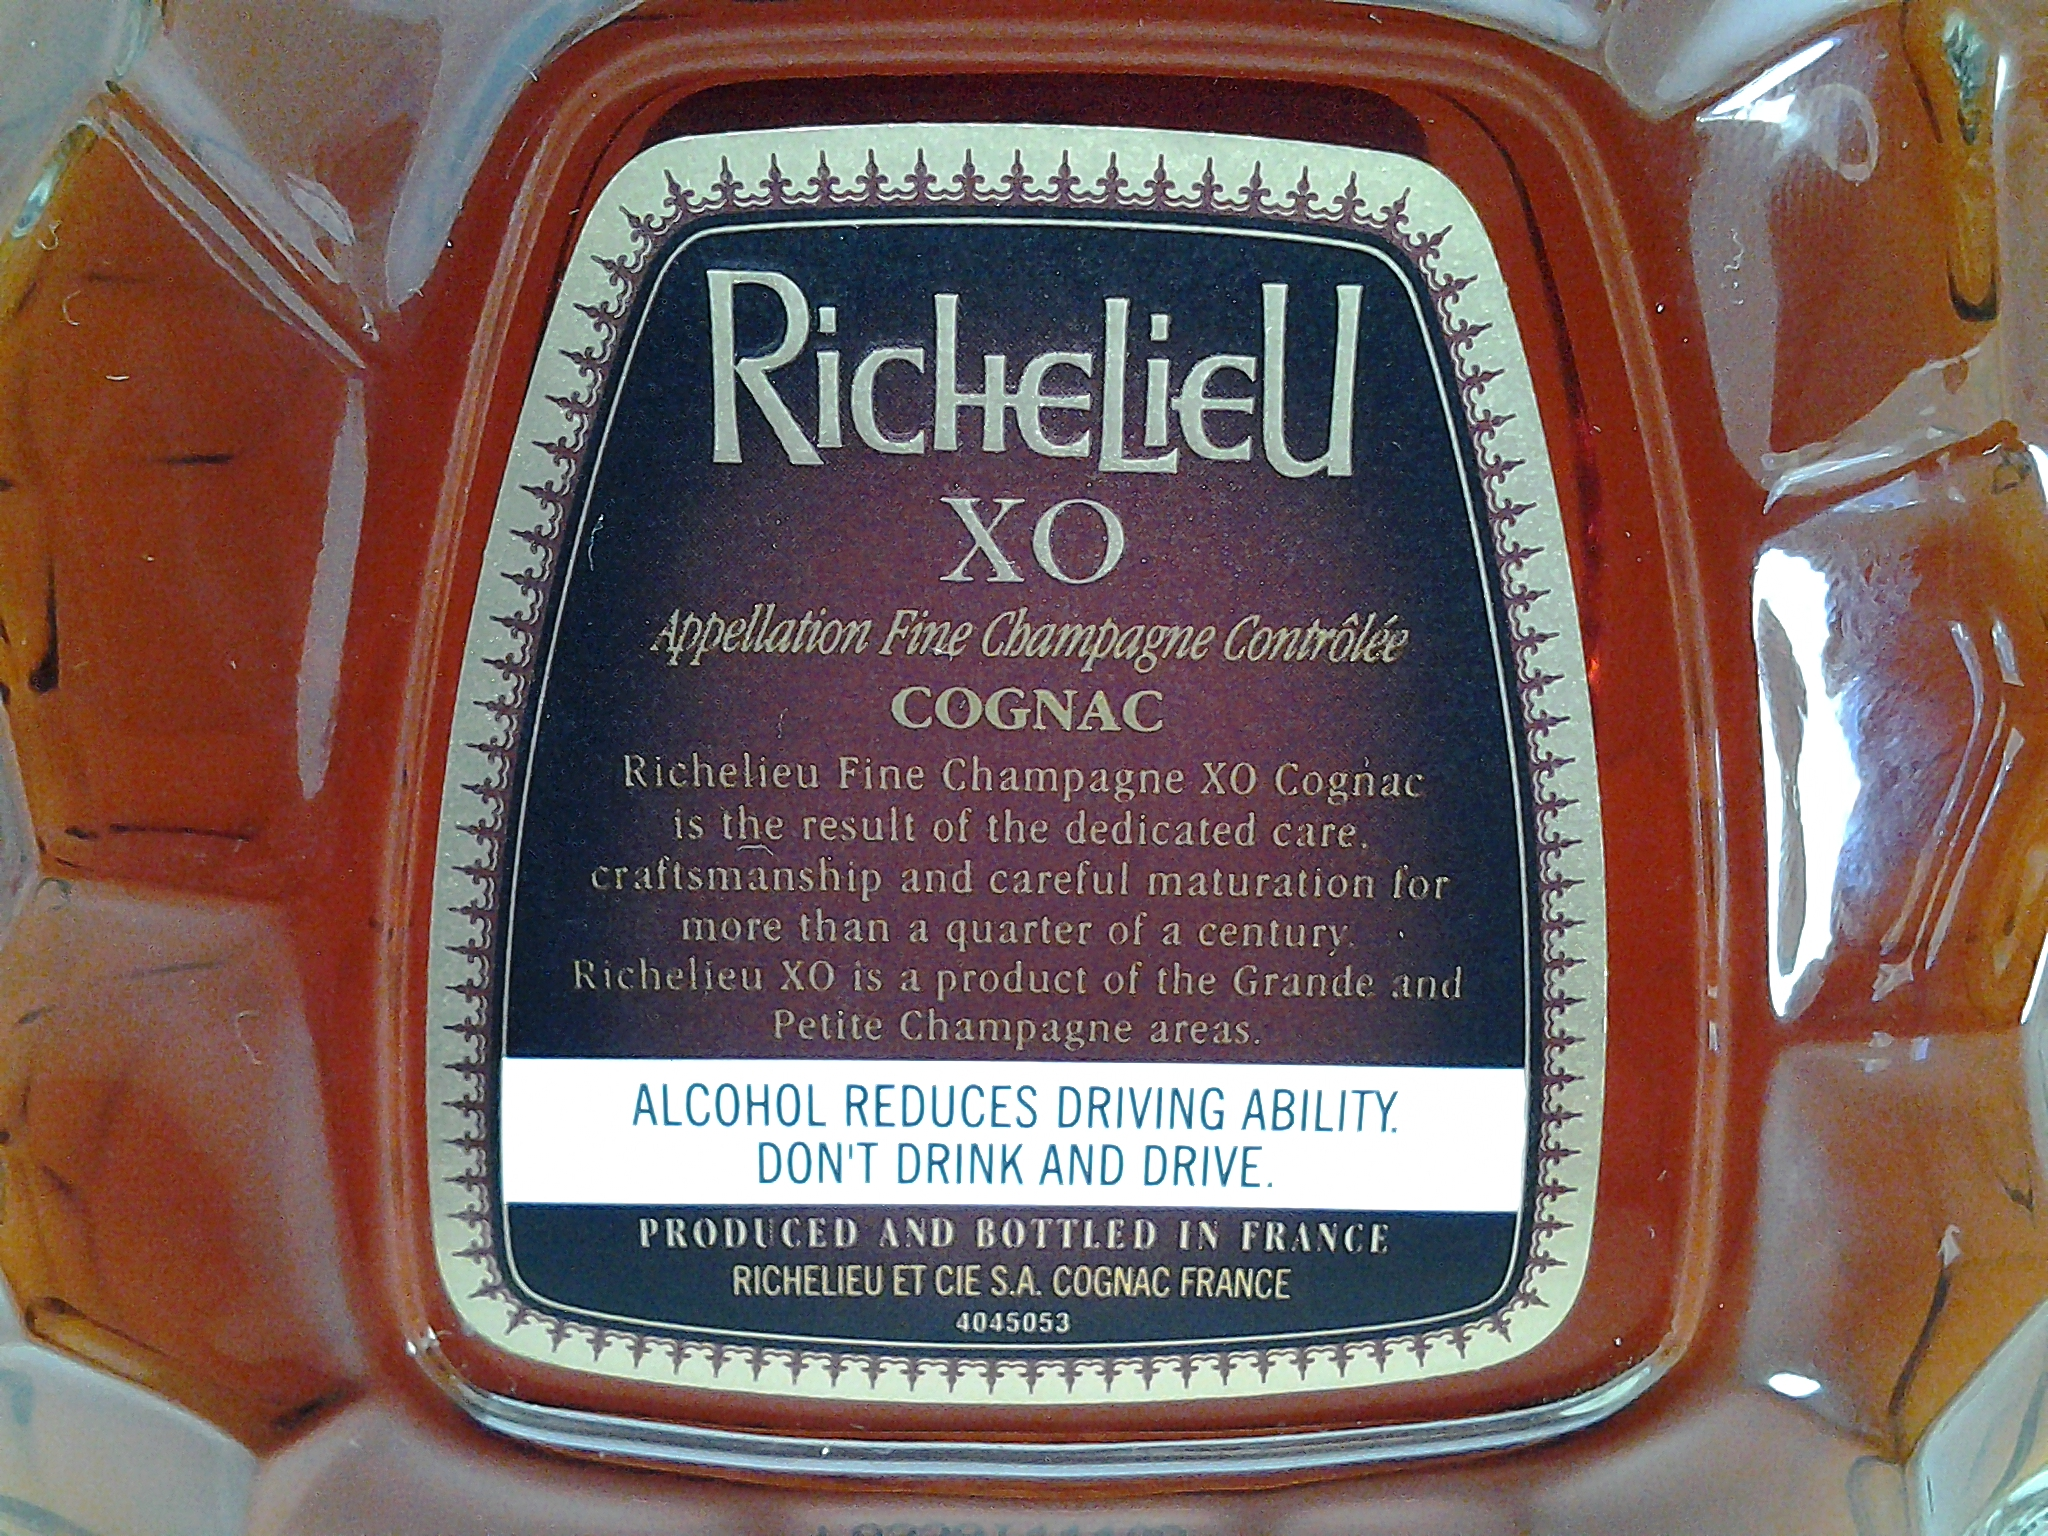 Richelieu XO Cognac Fine Champagne: Sister Brand of Bisquit